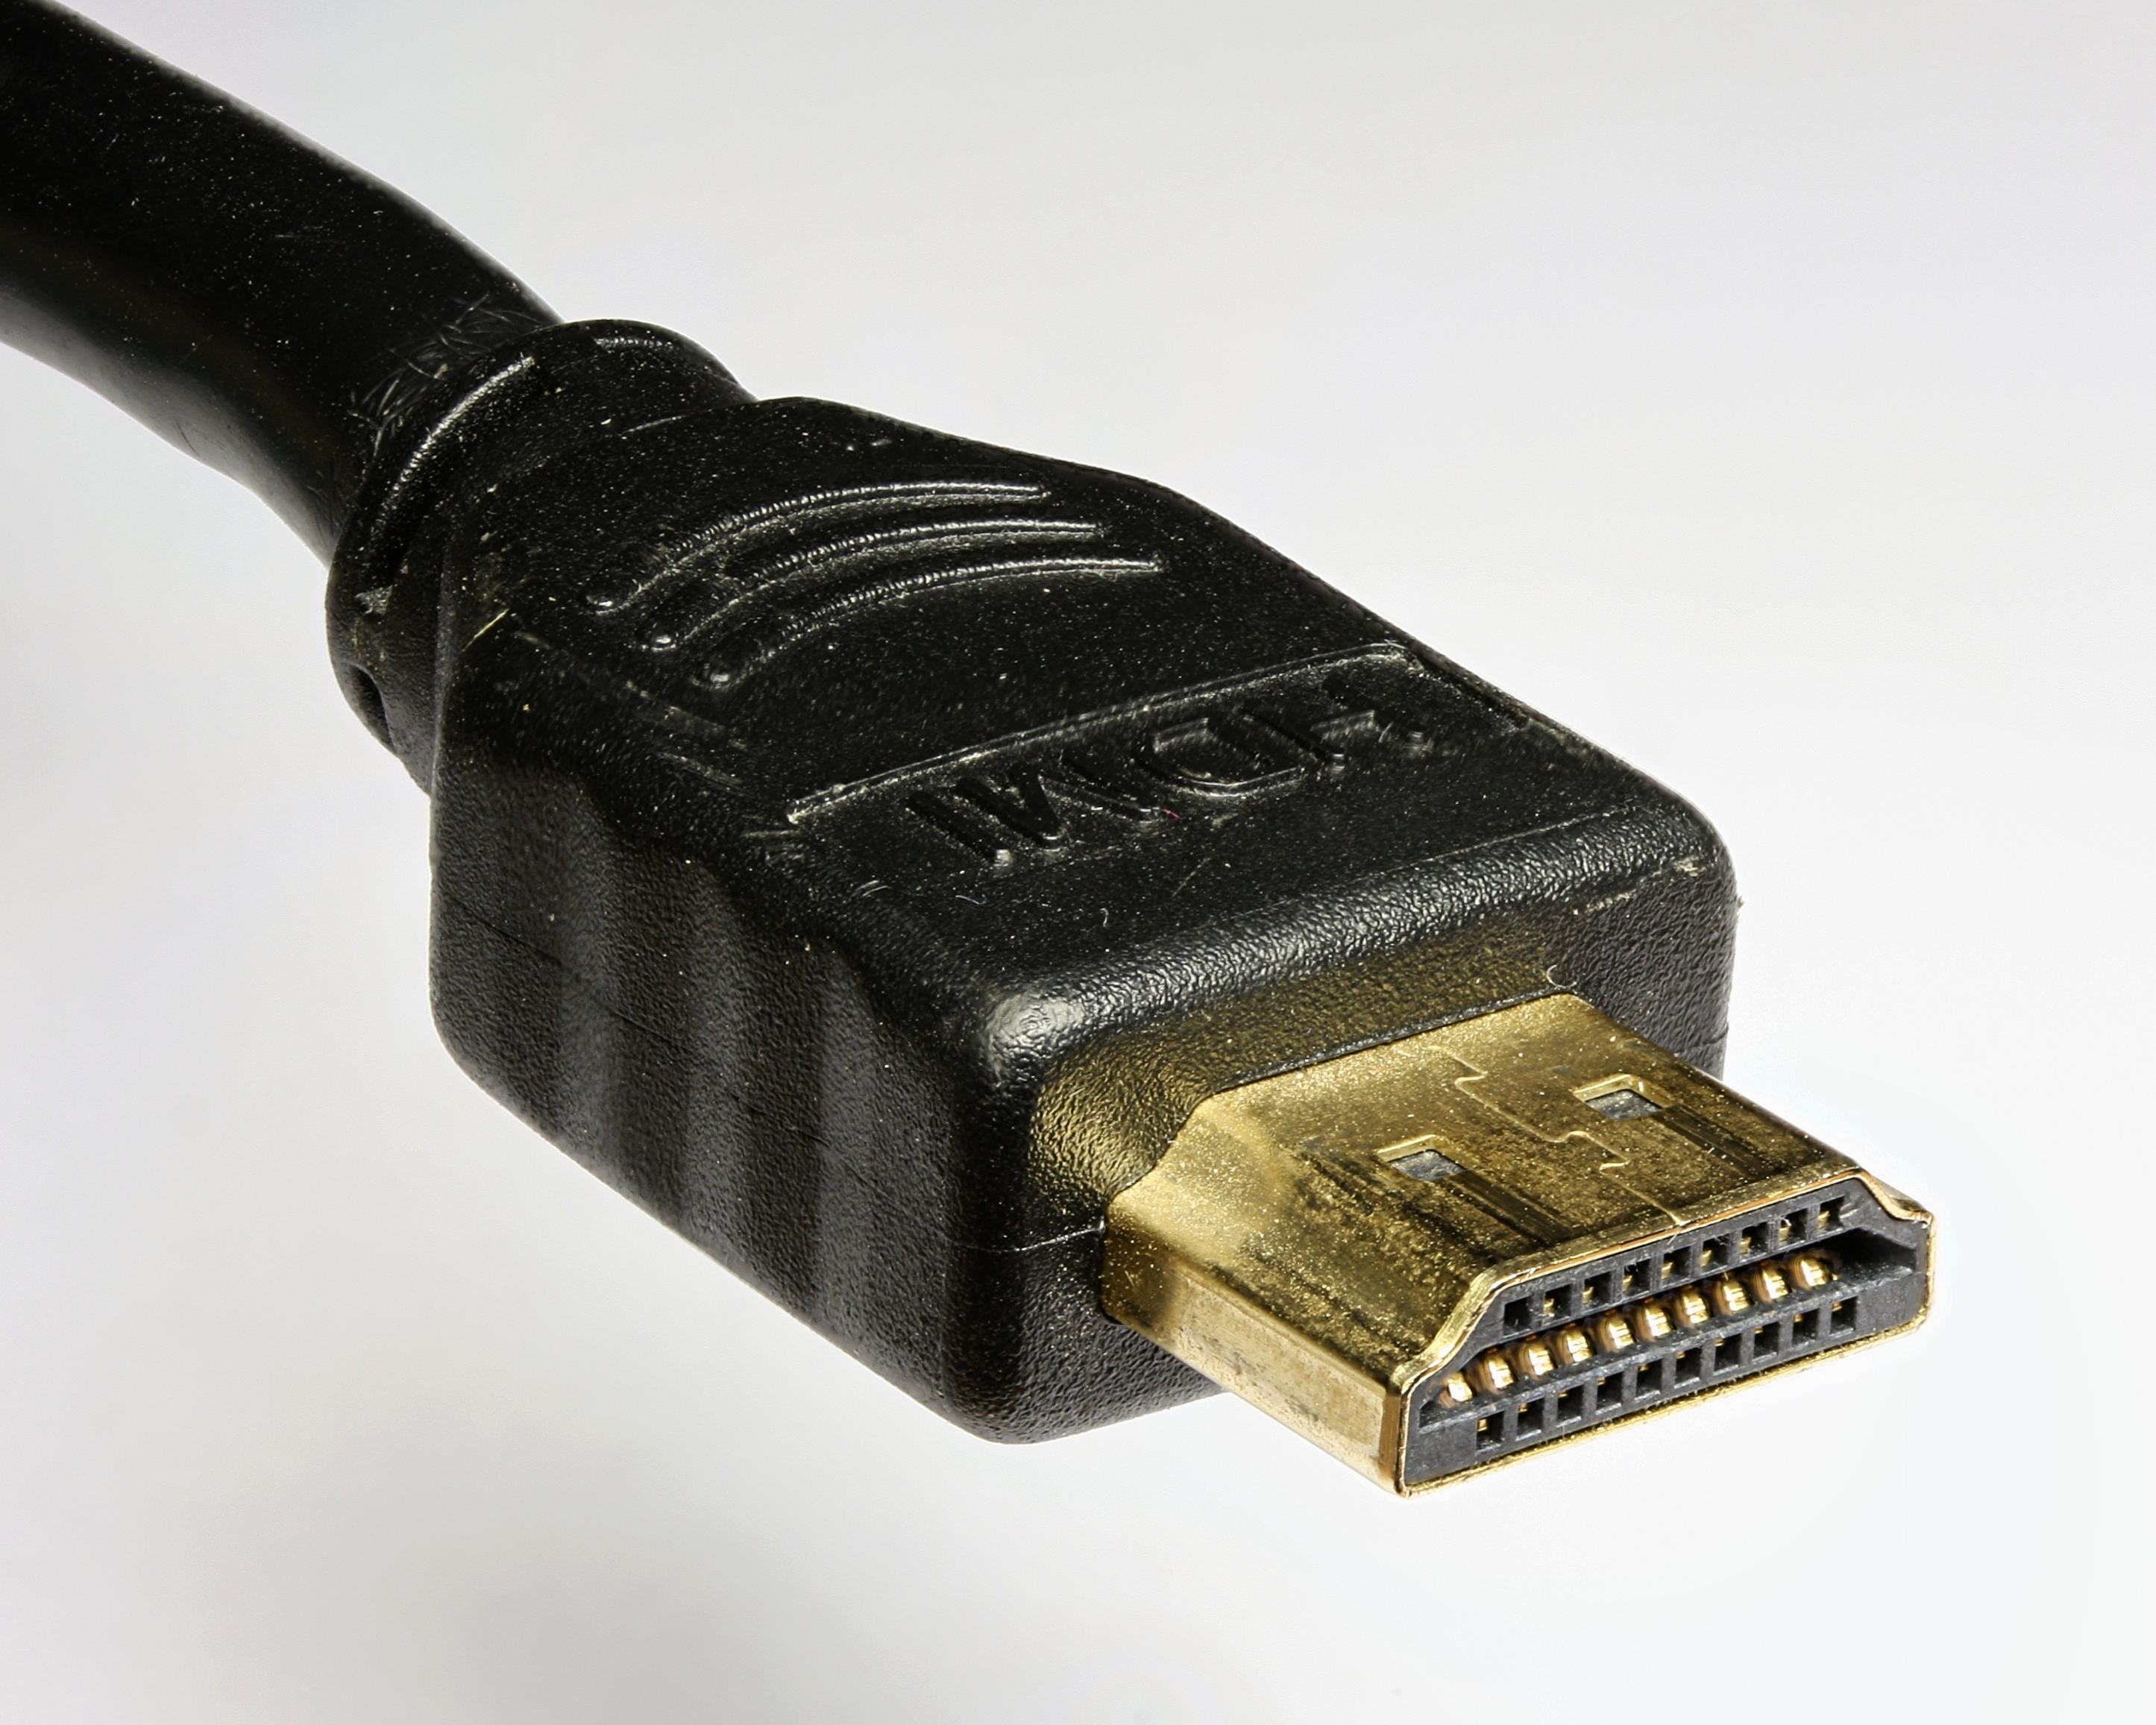 Filehdmi Connector Male Ar 5to4 Fs Pnr0270 Wikimedia Commons Rj45 To Vga Wiring Diagram